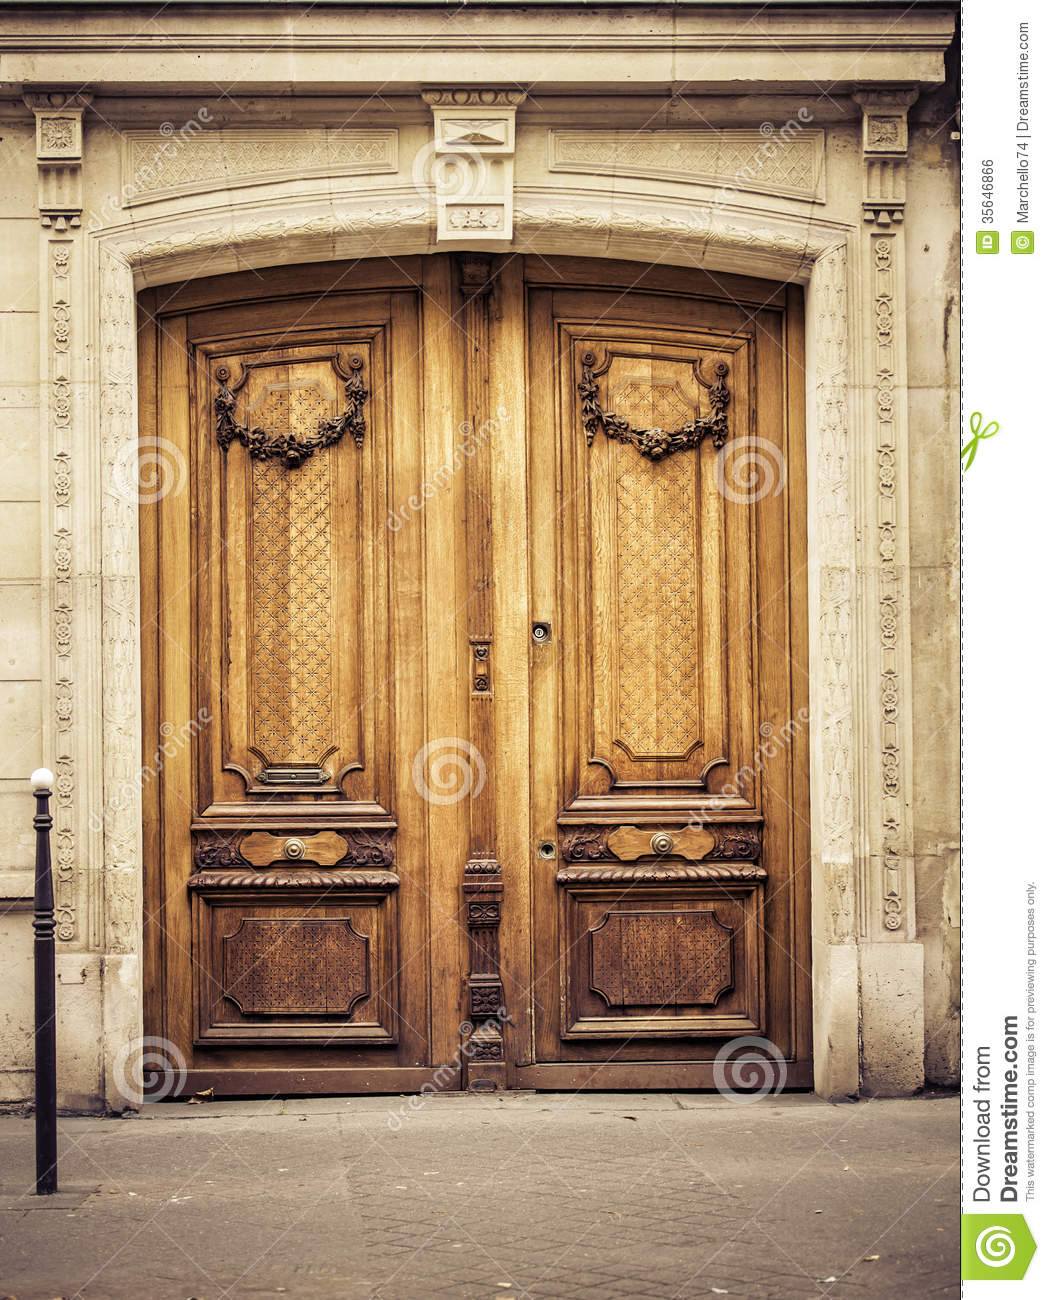 1300 #85A823 Old Wooden Arch Entry Door Old Wooden Arch Entry Door Paris France Old  image Arched Wood Entry Doors 40831050